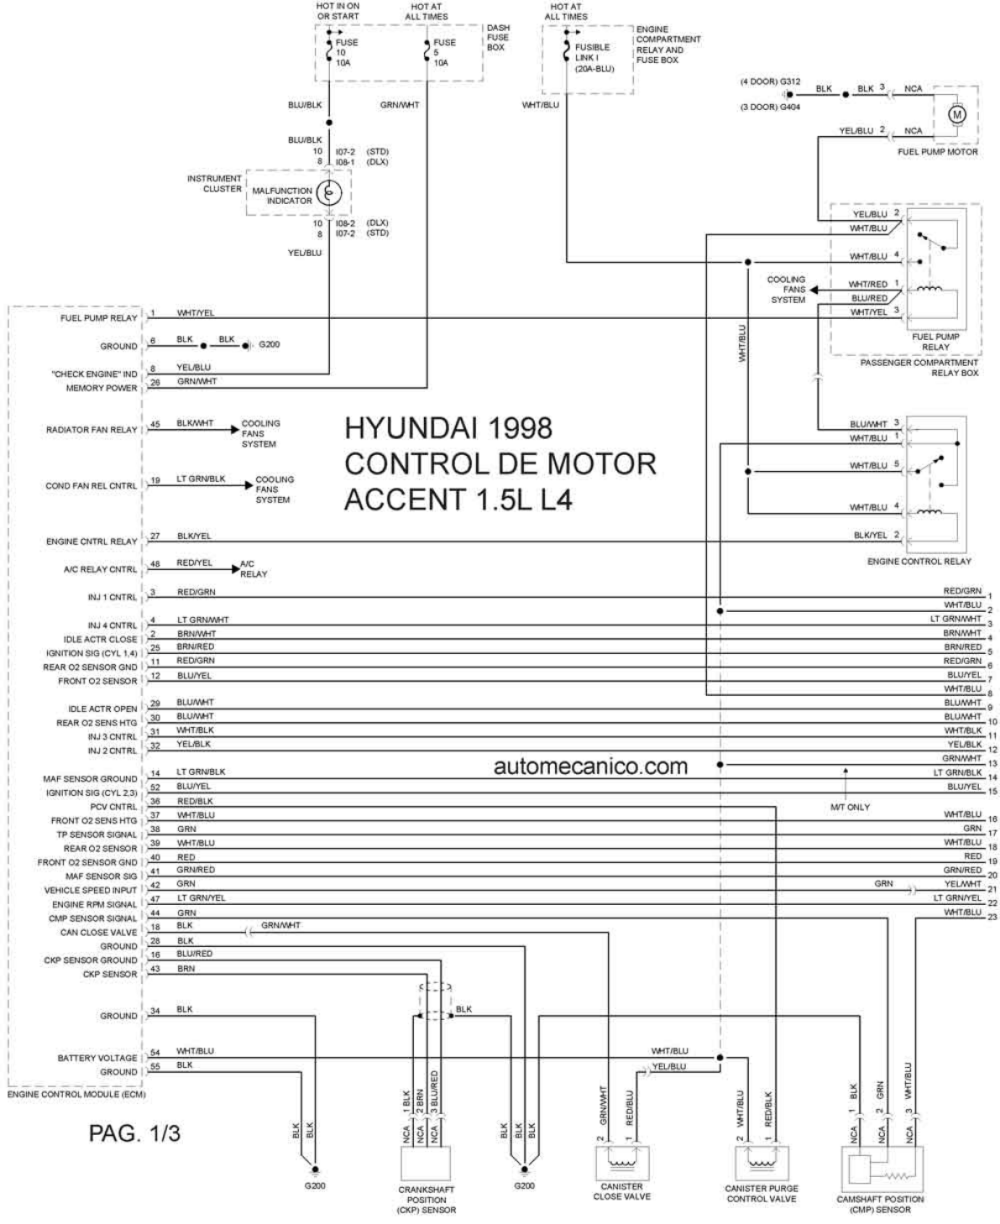 medium resolution of fuse diagram 2007 accent simple wiring diagram mercedes fuse diagram 2004 hyundai accent 1998 misc document